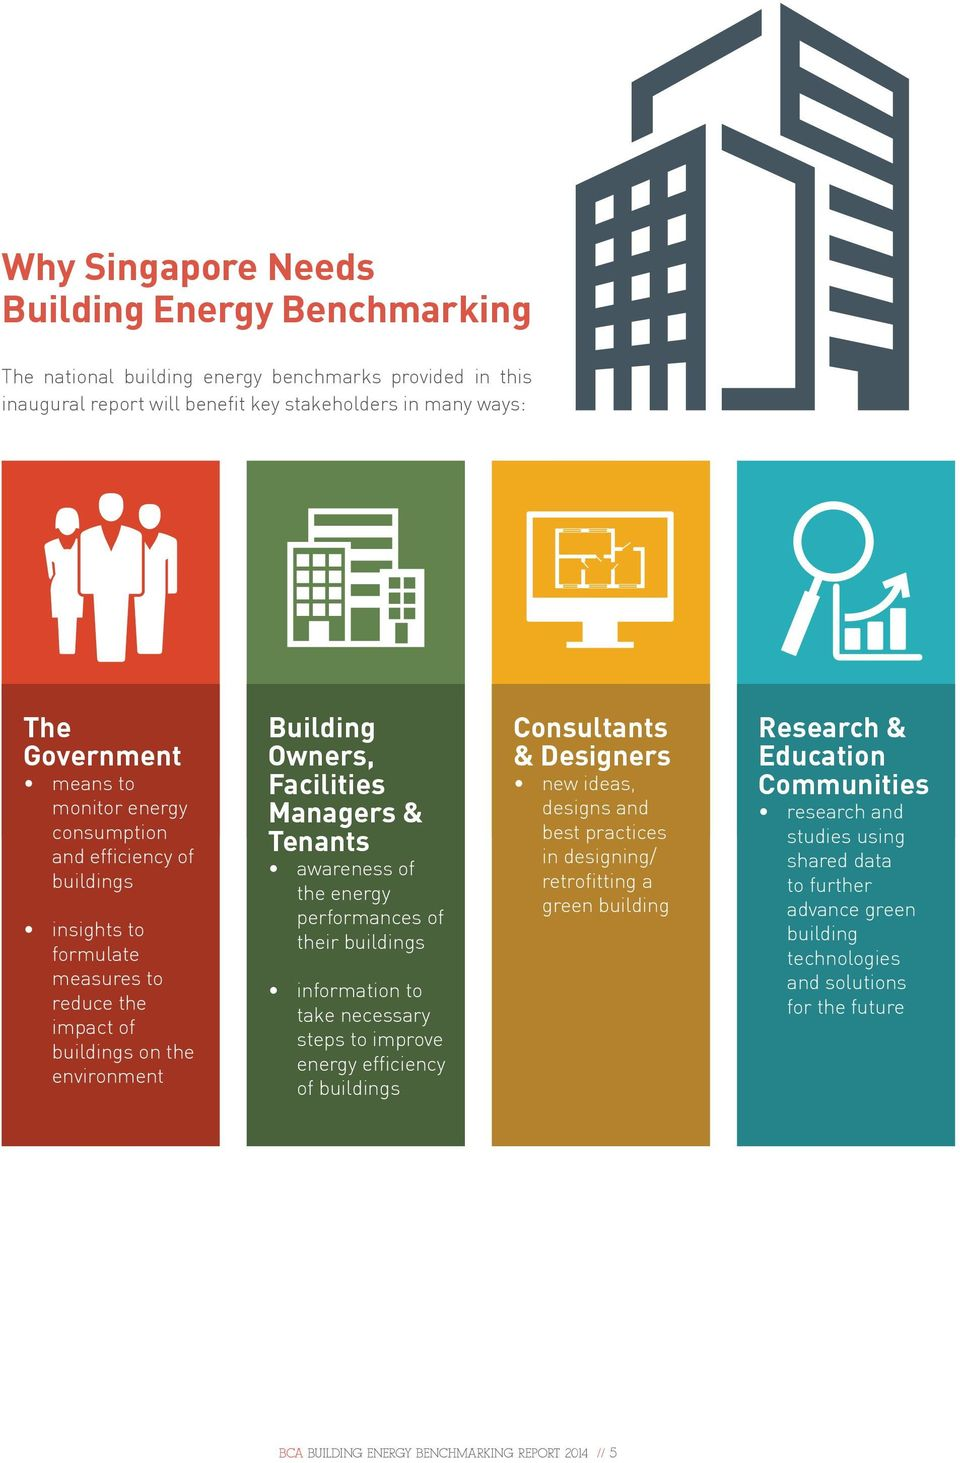 energy performances of their buildings information to take necessary steps to improve energy efficiency of buildings Consultants & Designers new ideas, designs and best practices in designing/